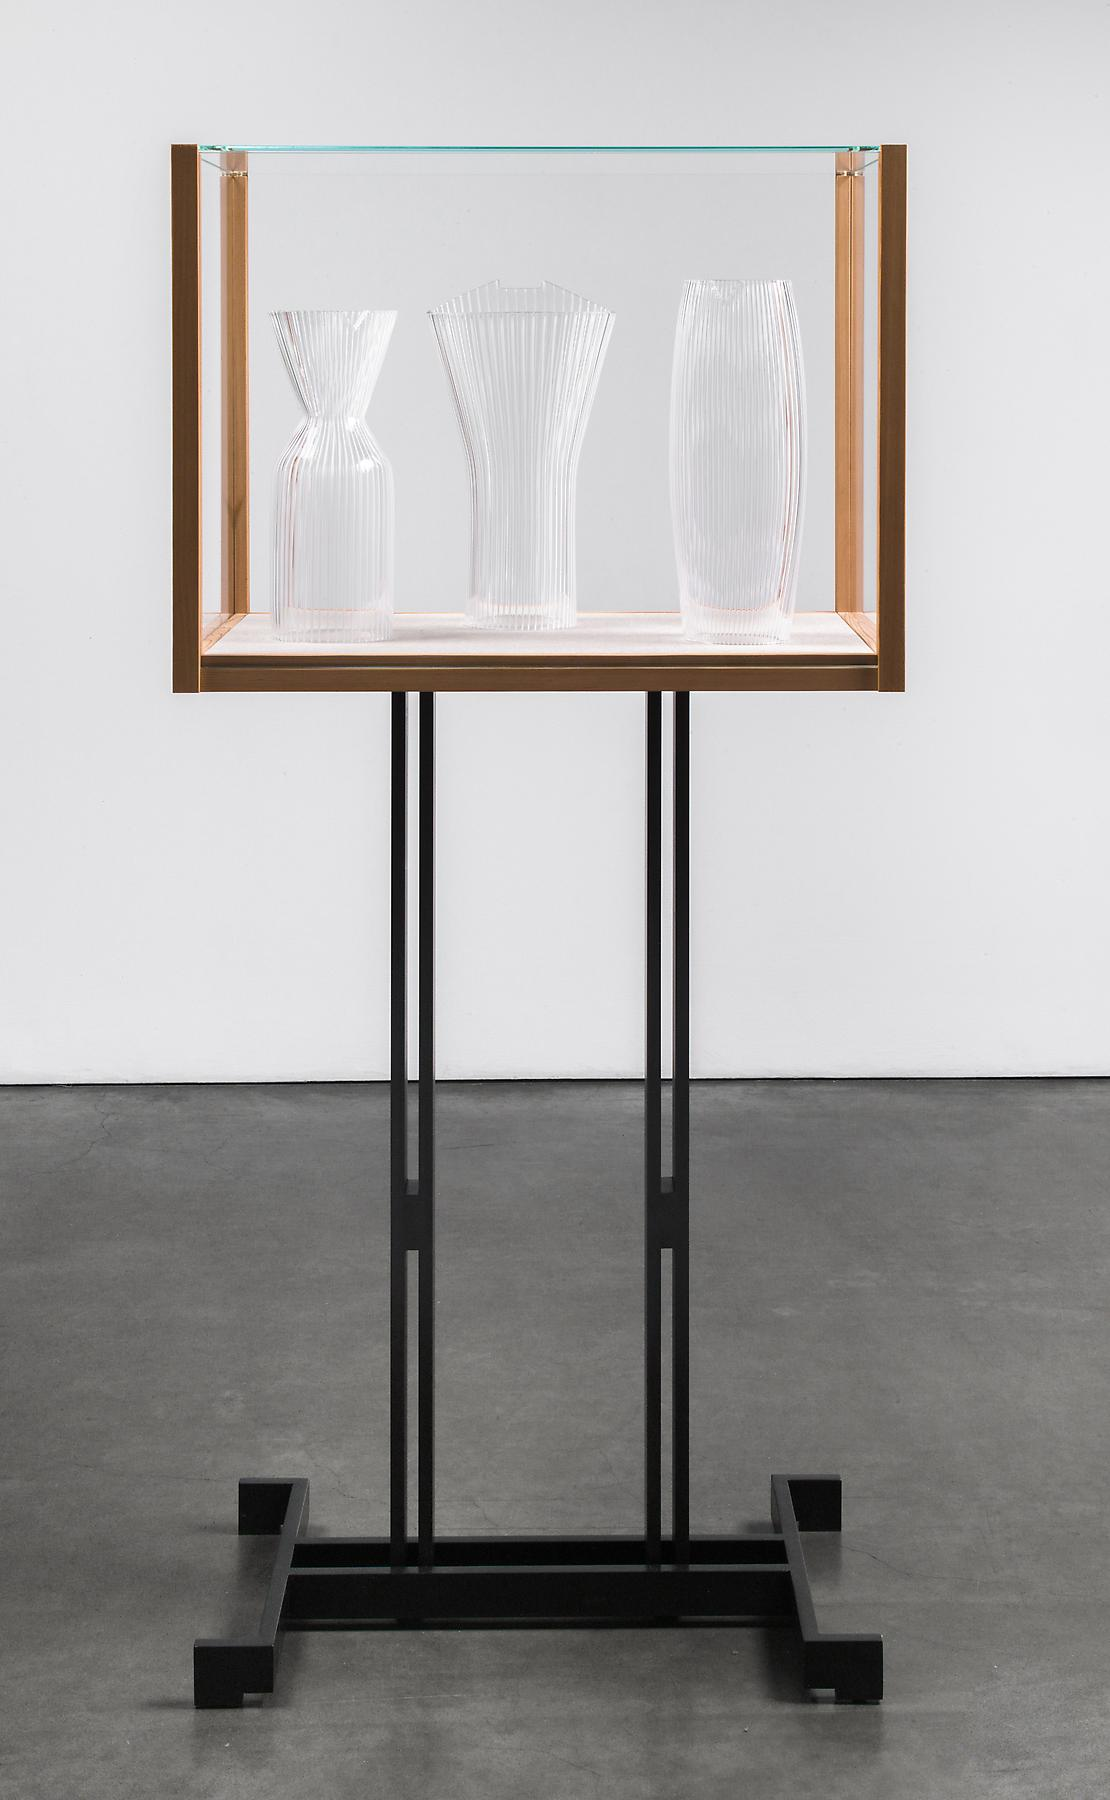 Josiah McElheny <i>Models for an abstract body (after Stepanova)</i> 2012 Patinated cold-roll steel, cedar wood, low iron glass, hand blown and carved glass 65 3/8 x 30 1/2 x 19 9/16 inches